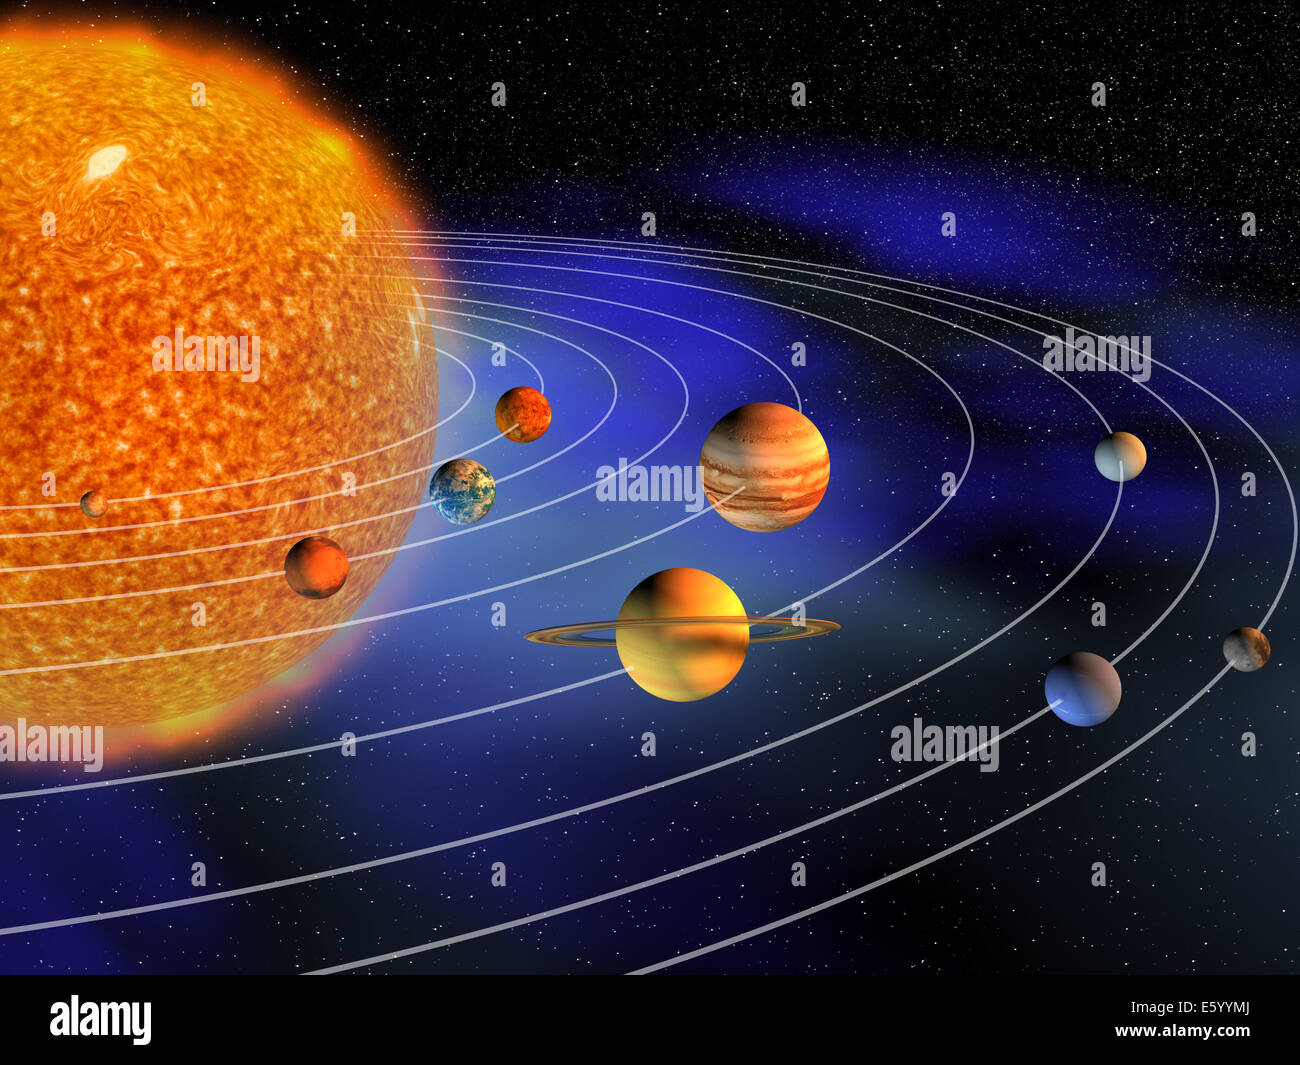 Diagram of the planets stock photos diagram of the planets stock diagram of planets in solar system 3d render stock image ccuart Choice Image